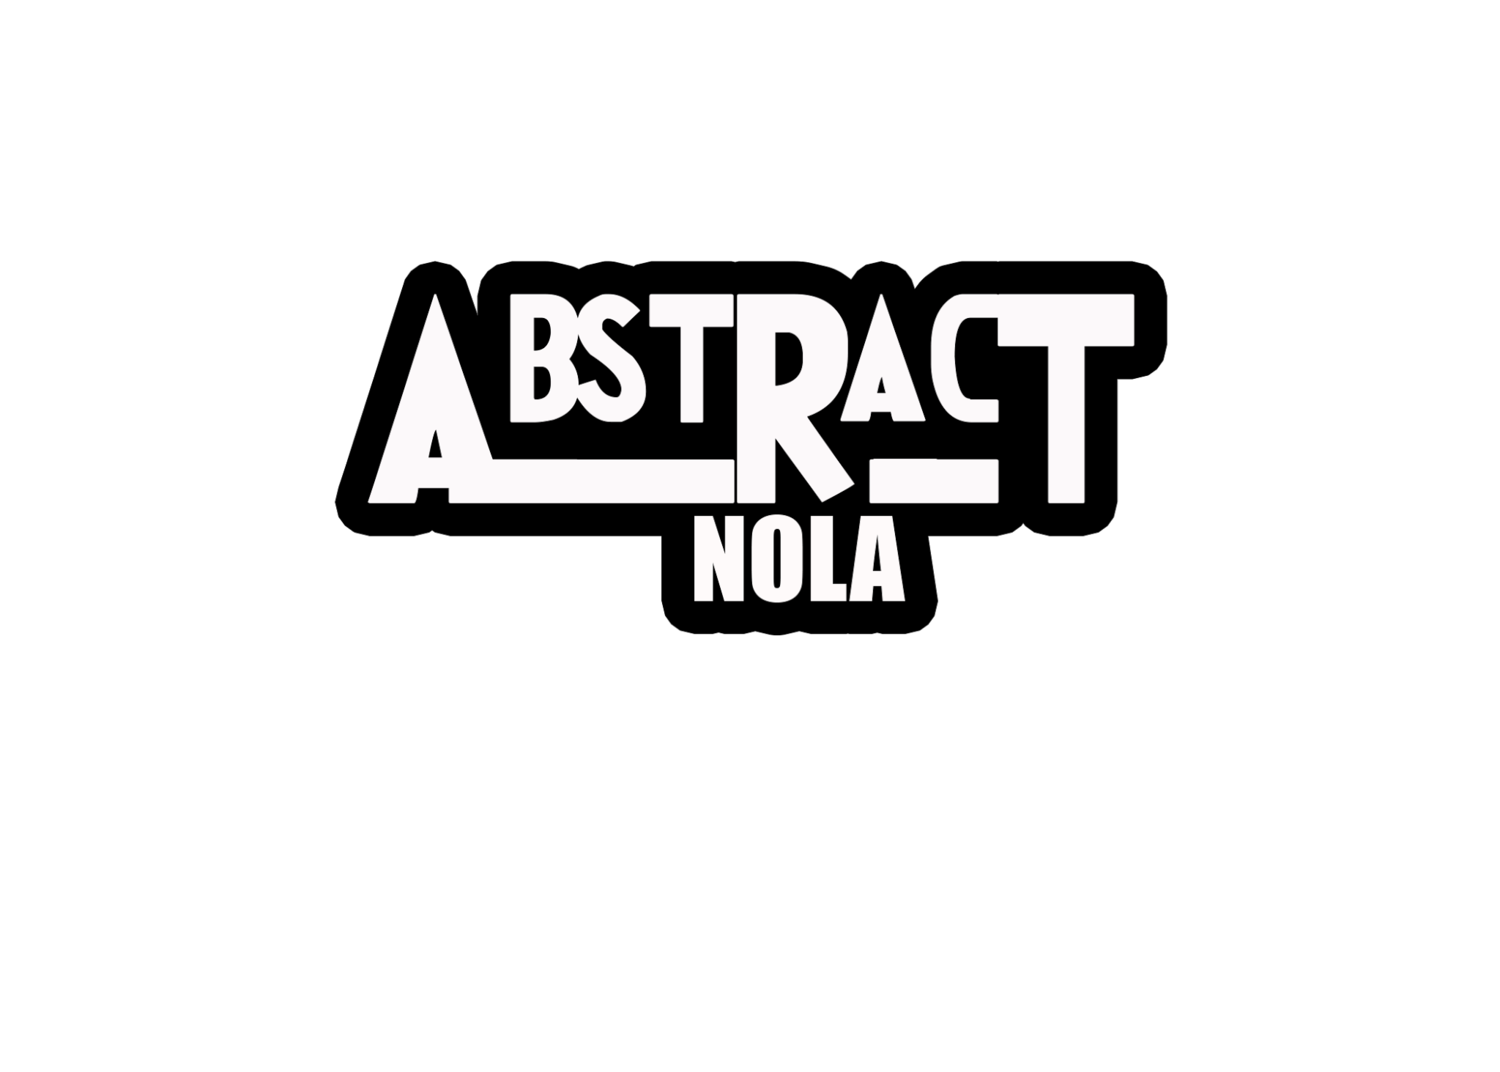 Abstract Nola